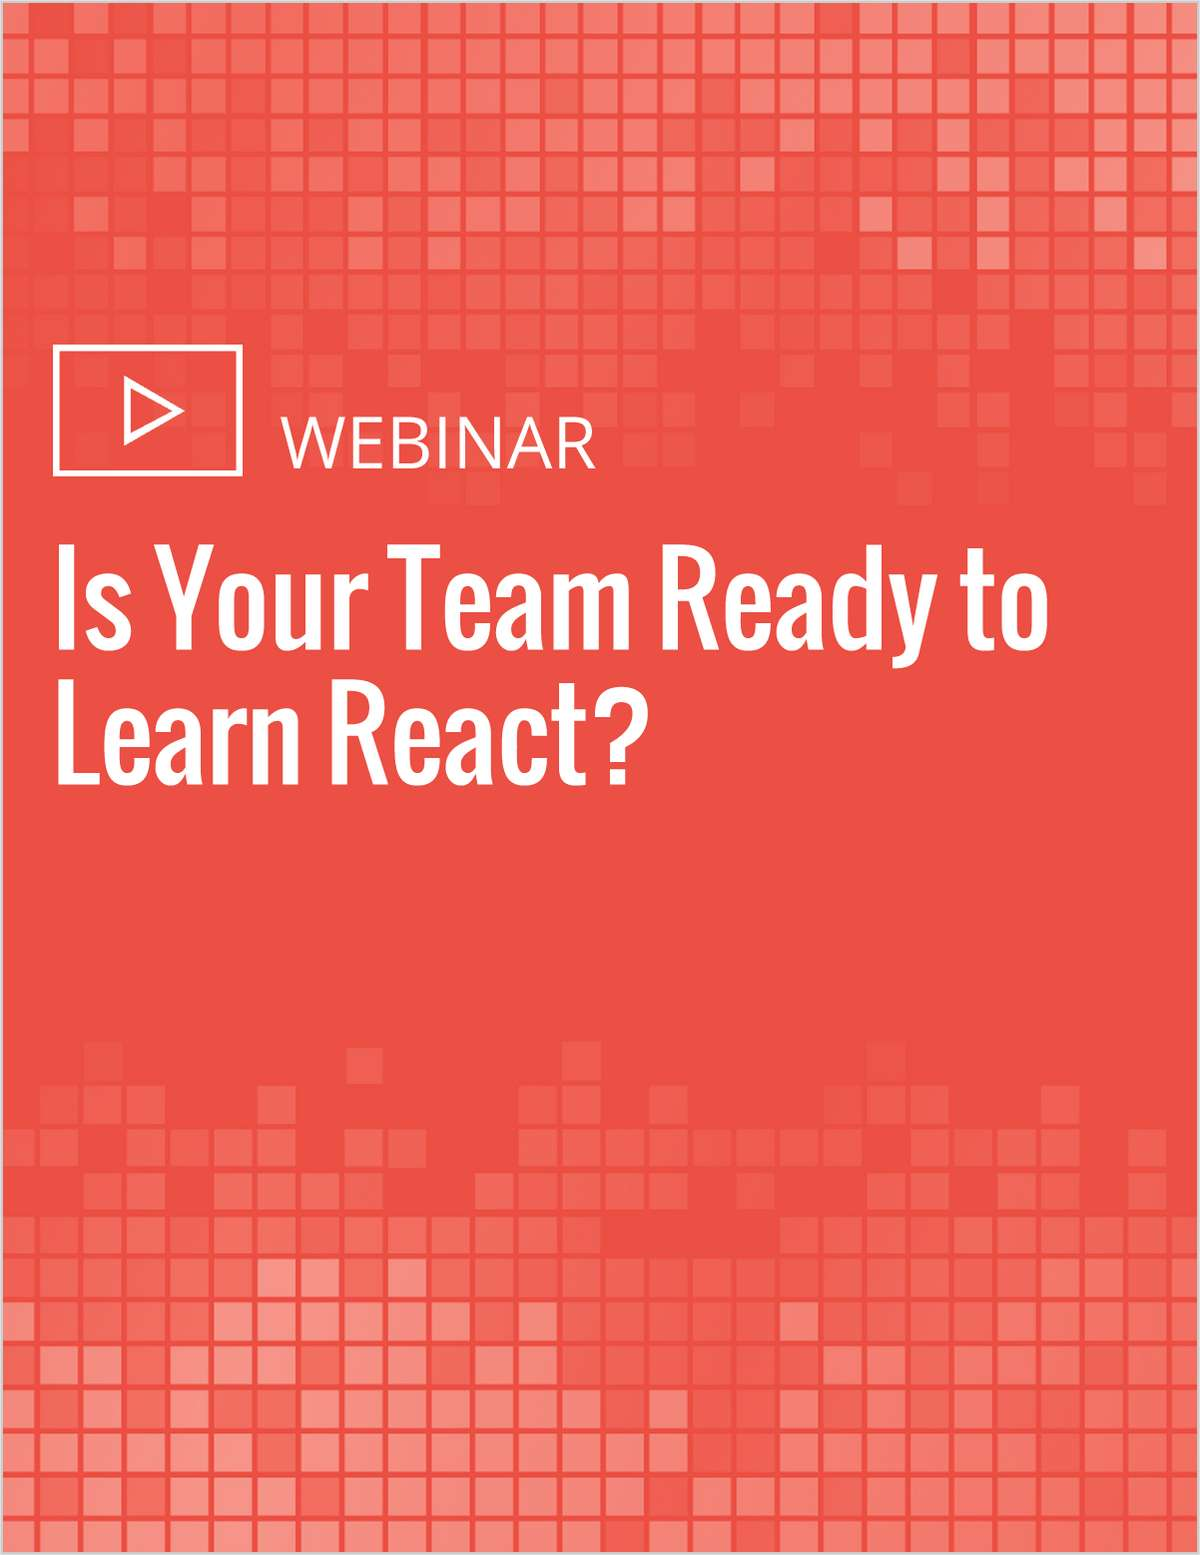 Is Your Team Ready to Learn React?